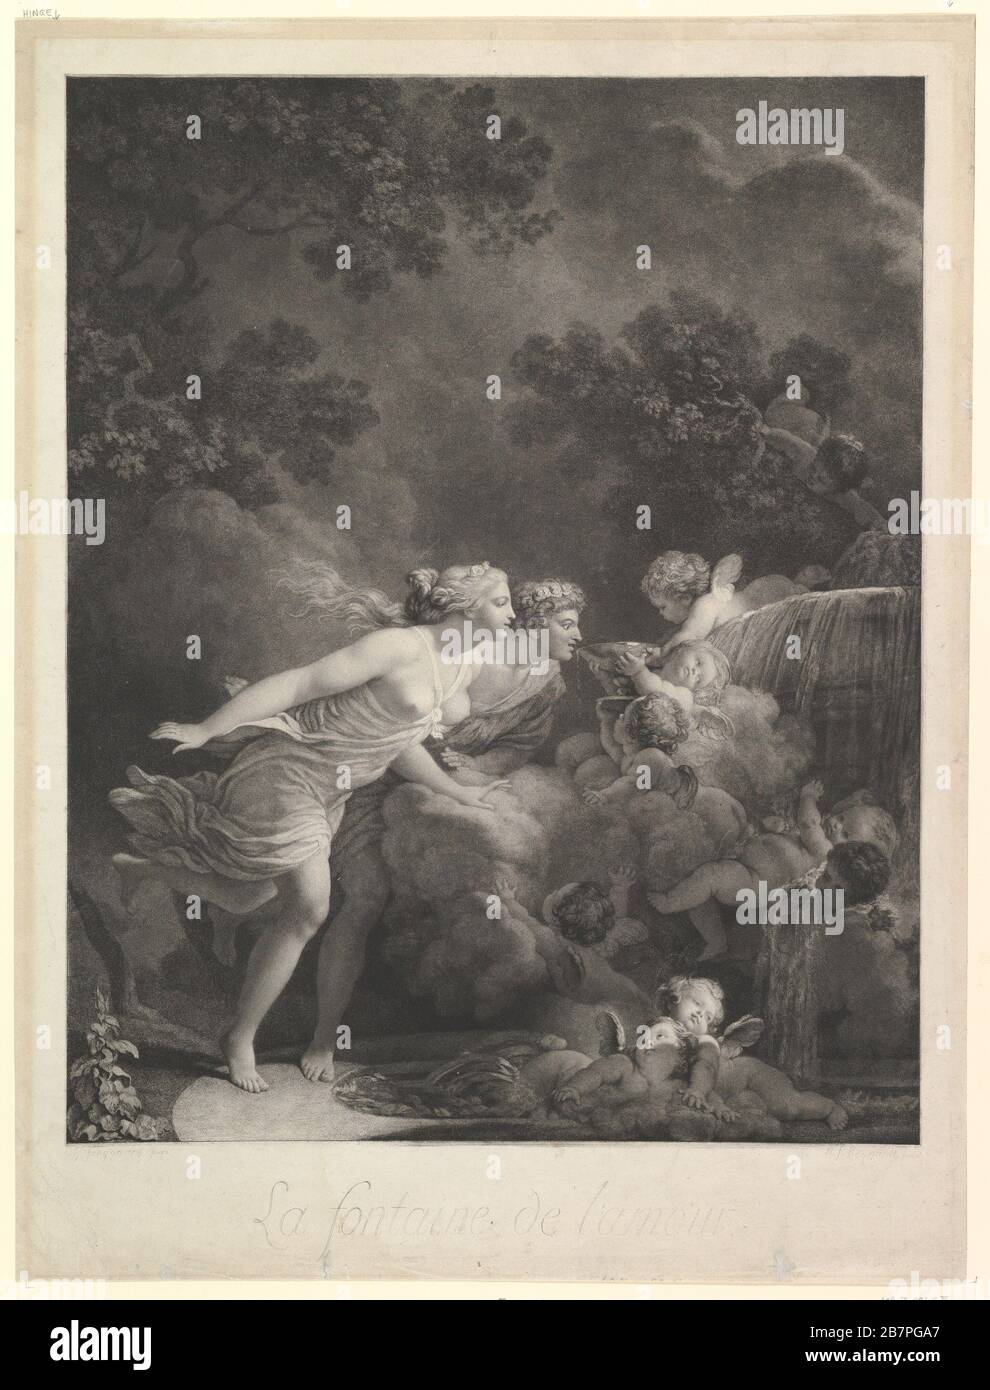 La Fontaine d'Amour, 1785. (The Fountain of Love). Engraved by Nicholas Francois Regnault Stock Photo